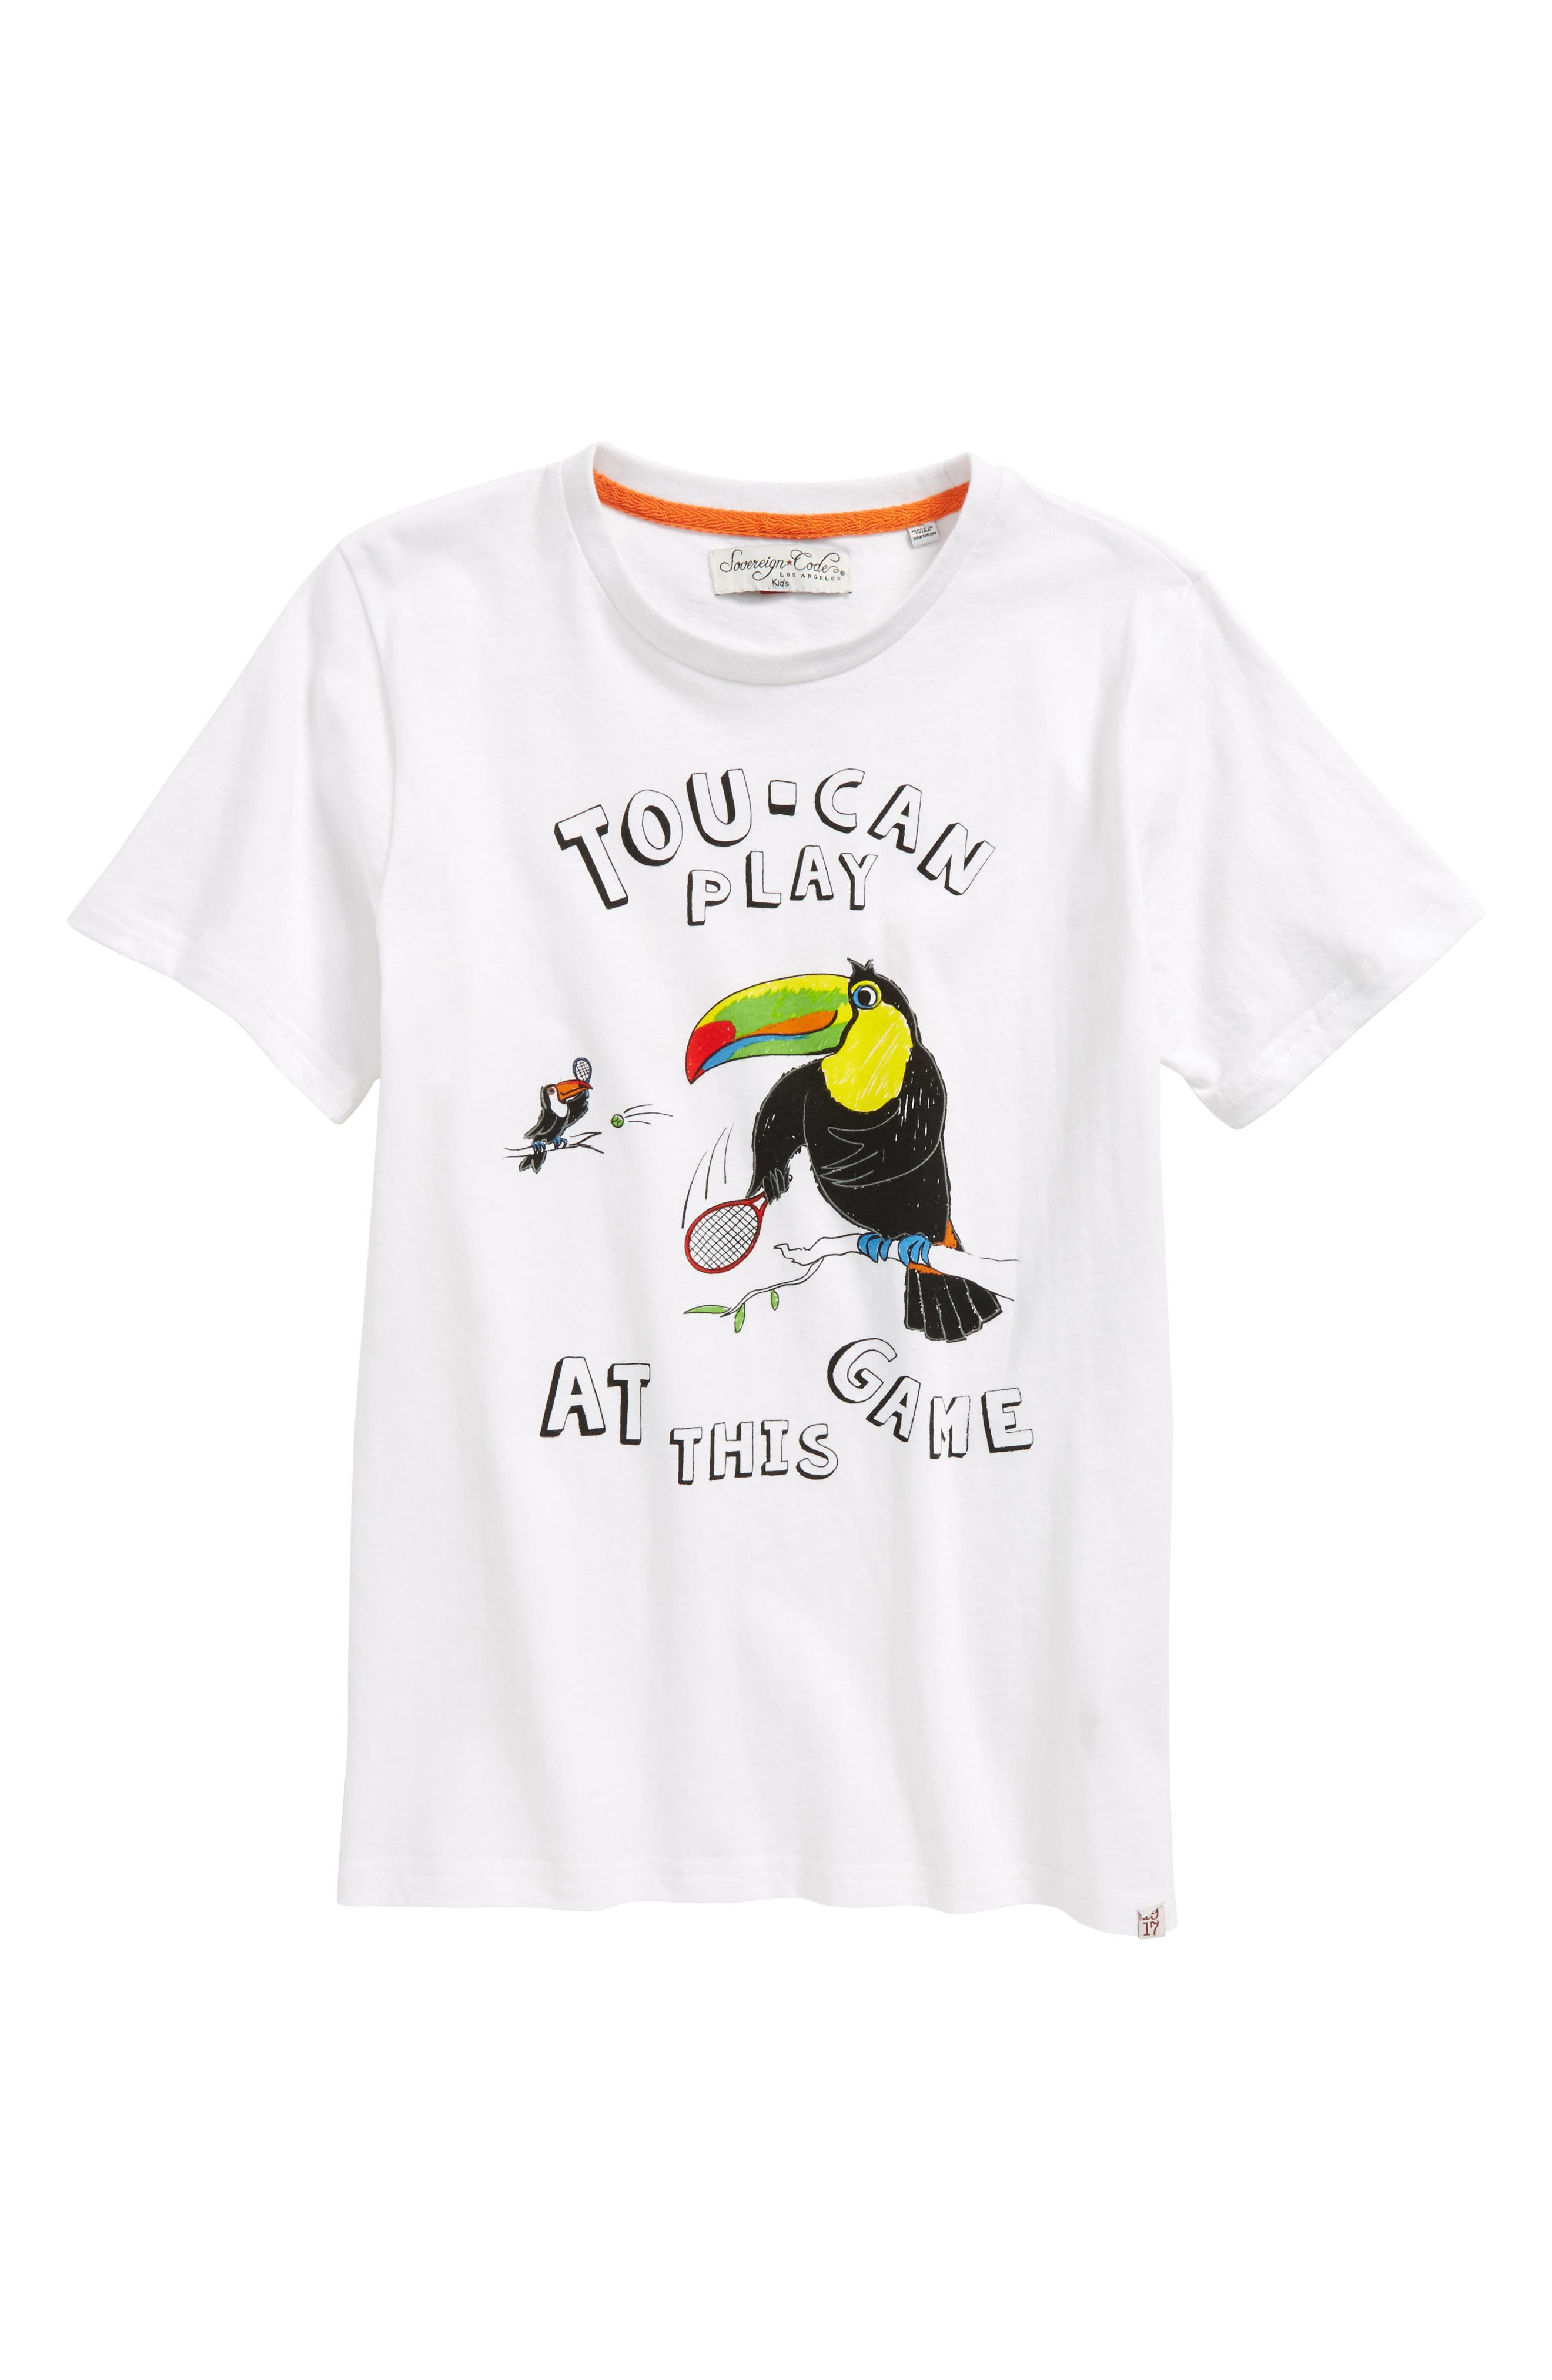 Main Image - Sovereign Code Toucan Play Graphic T-Shirt (Toddler Boys & Little Boys)